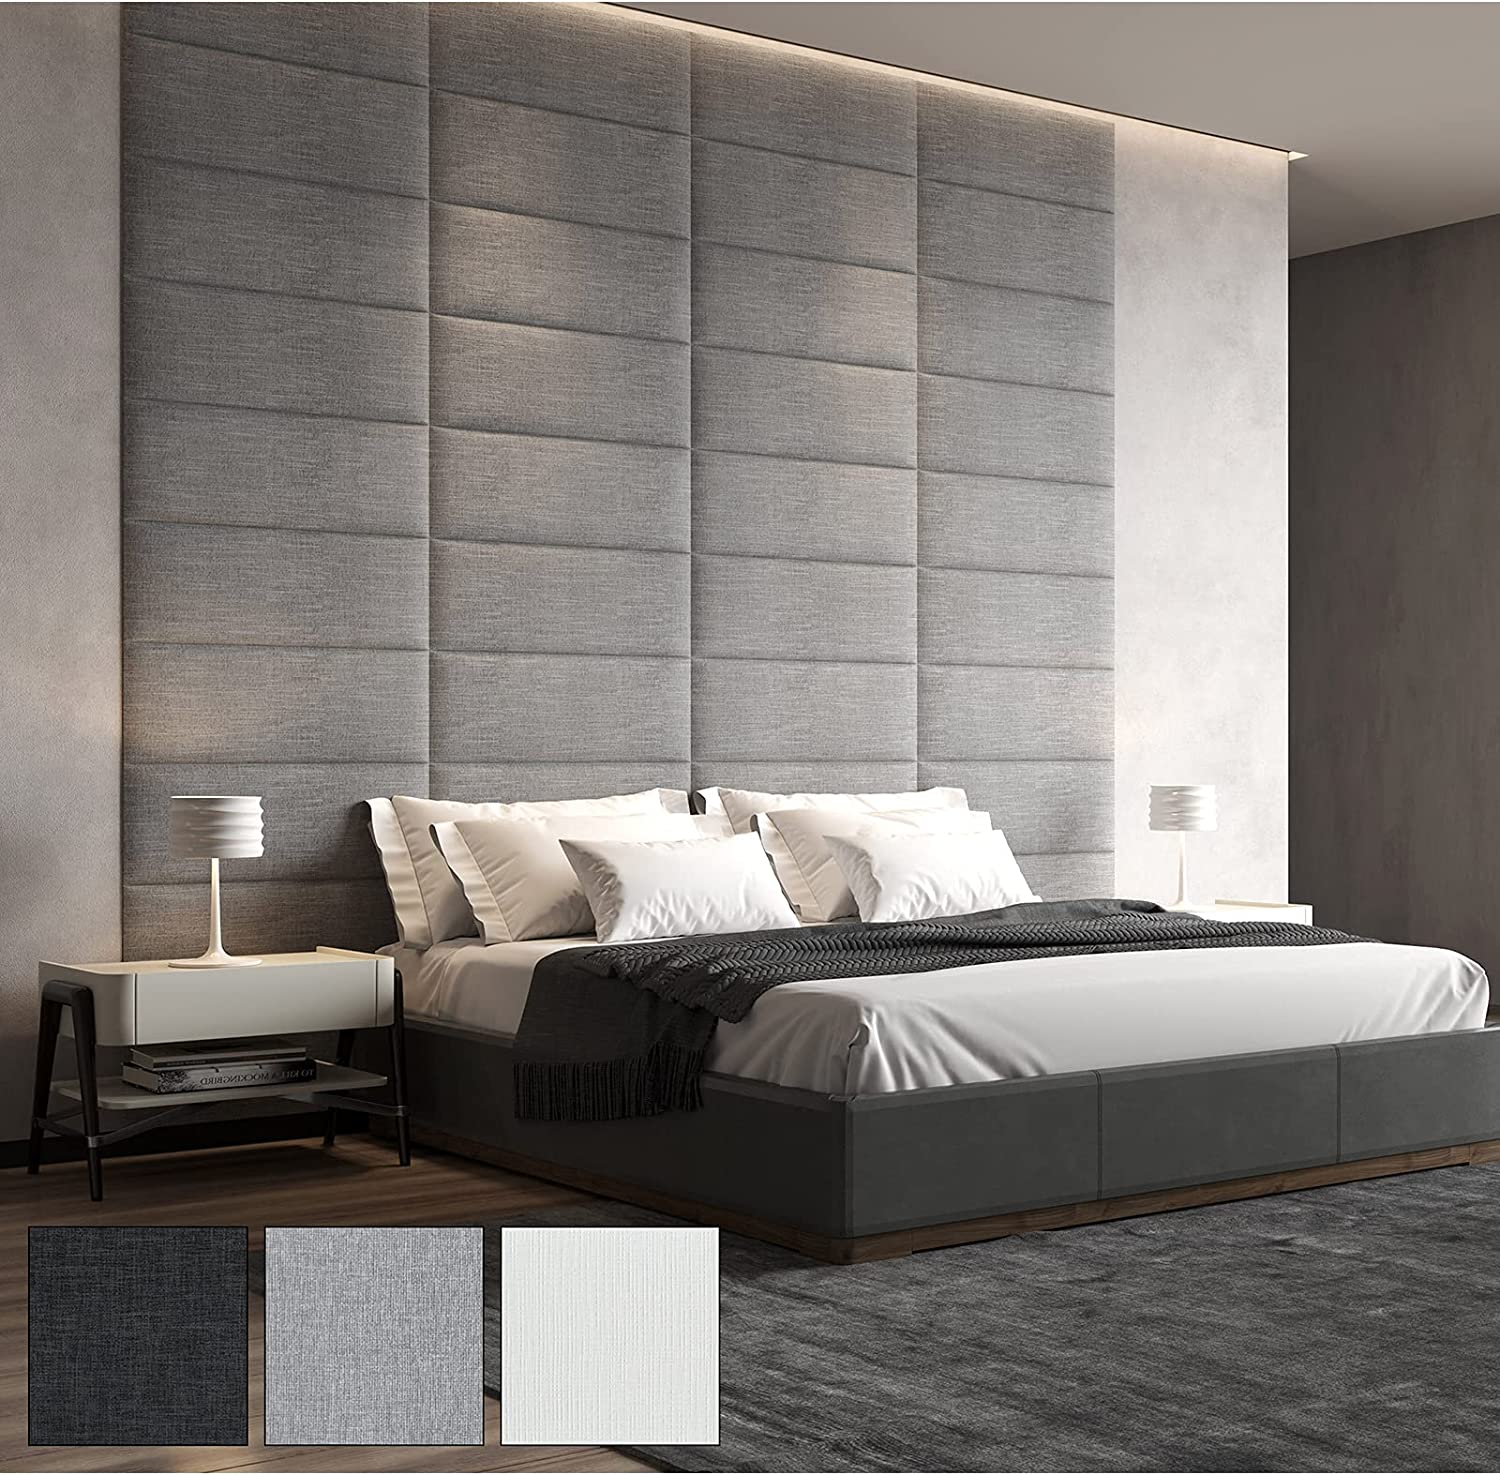 Art3d Removable Wall Mounted Headboard-Sized 39.4x11.8inches Pack of 8pcs-for Twin/King/Queen/Full-Gray-Upholstered Headboards-Accent Wall Panels